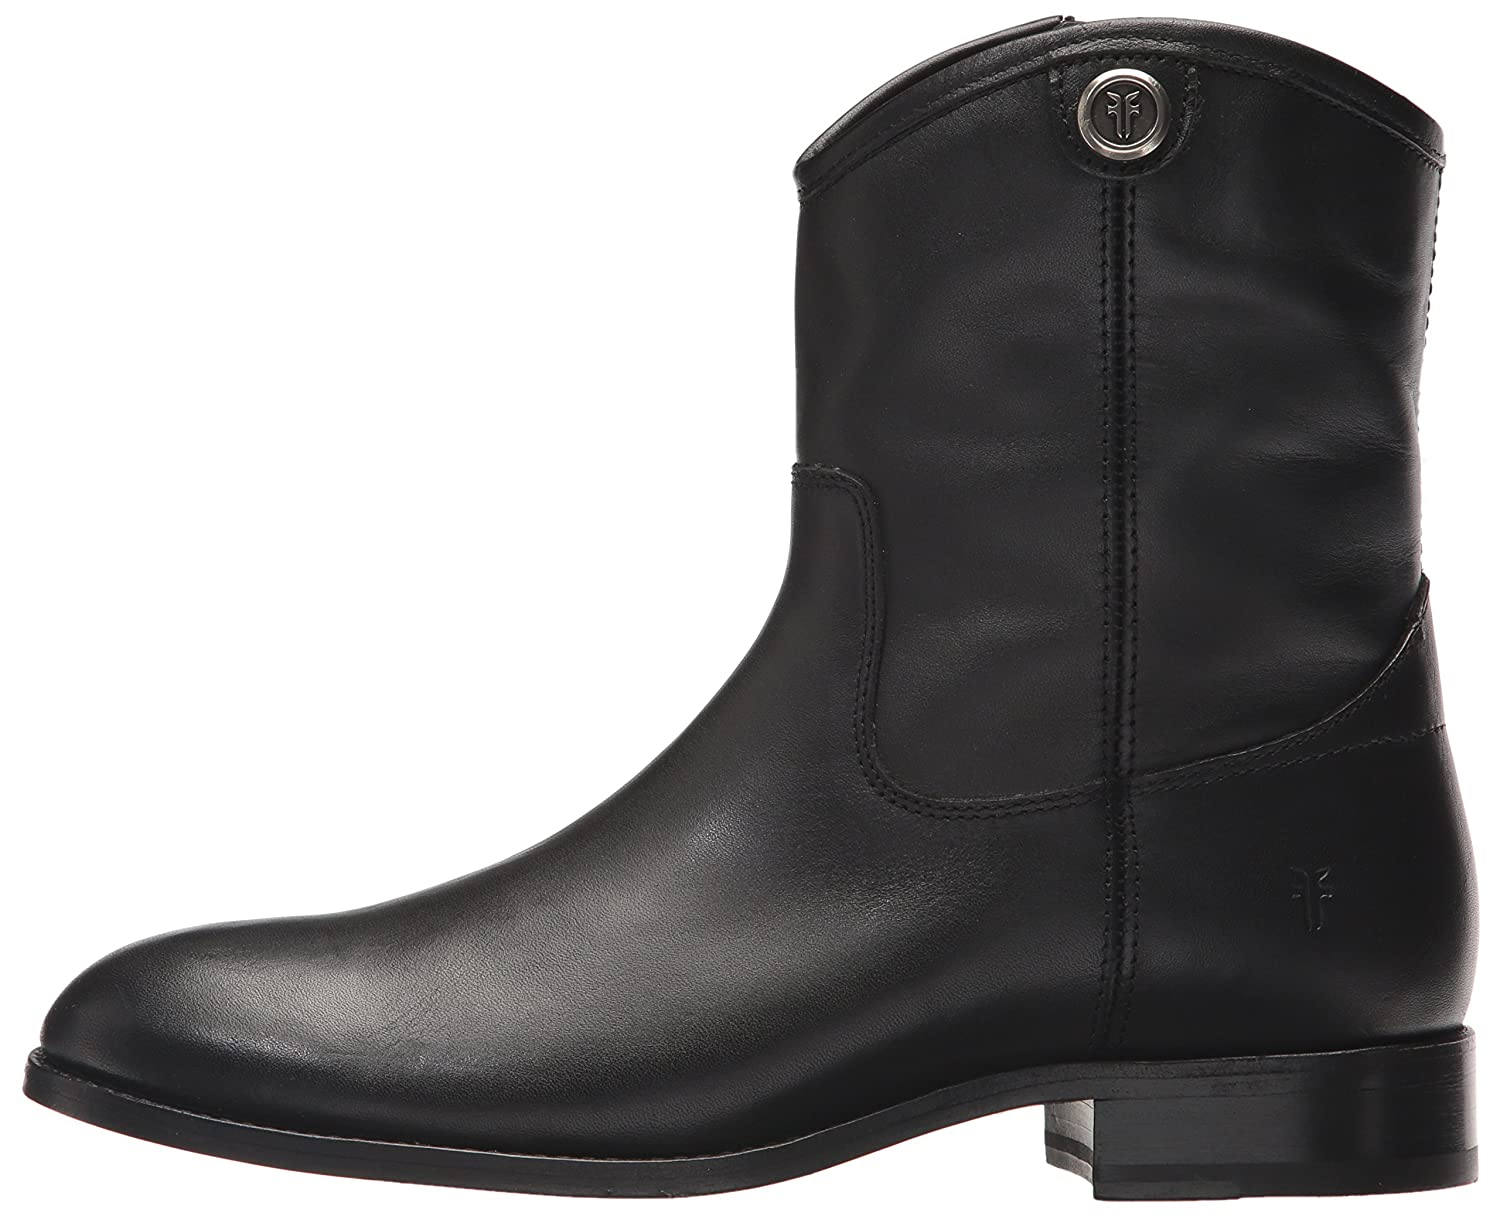 FRYE Women's Melissa Button B(M) Short 2 Boot B06WP1LP1J 9 B(M) Button US|Black d194ff